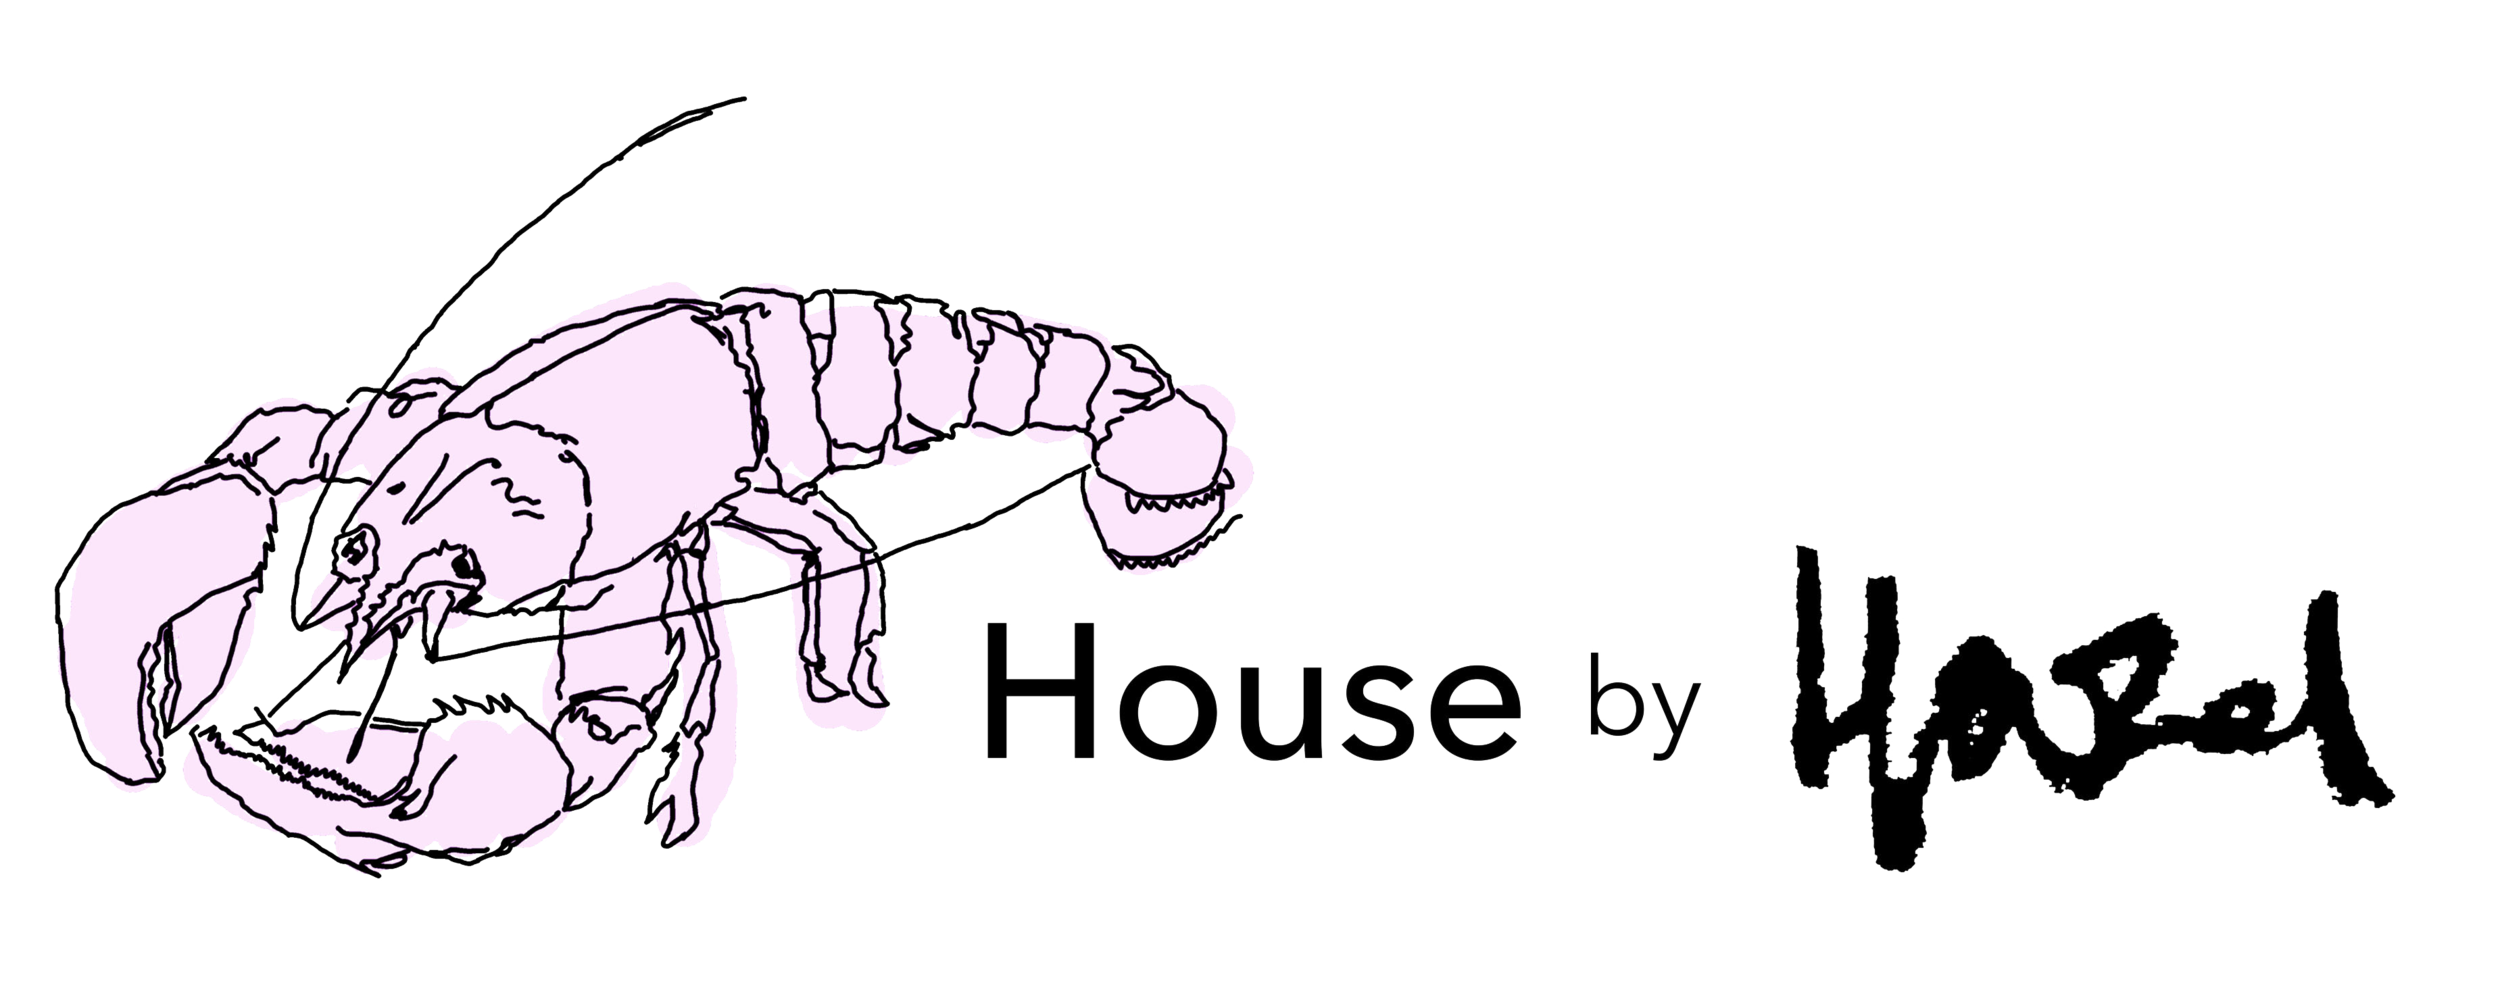 House by Hazel